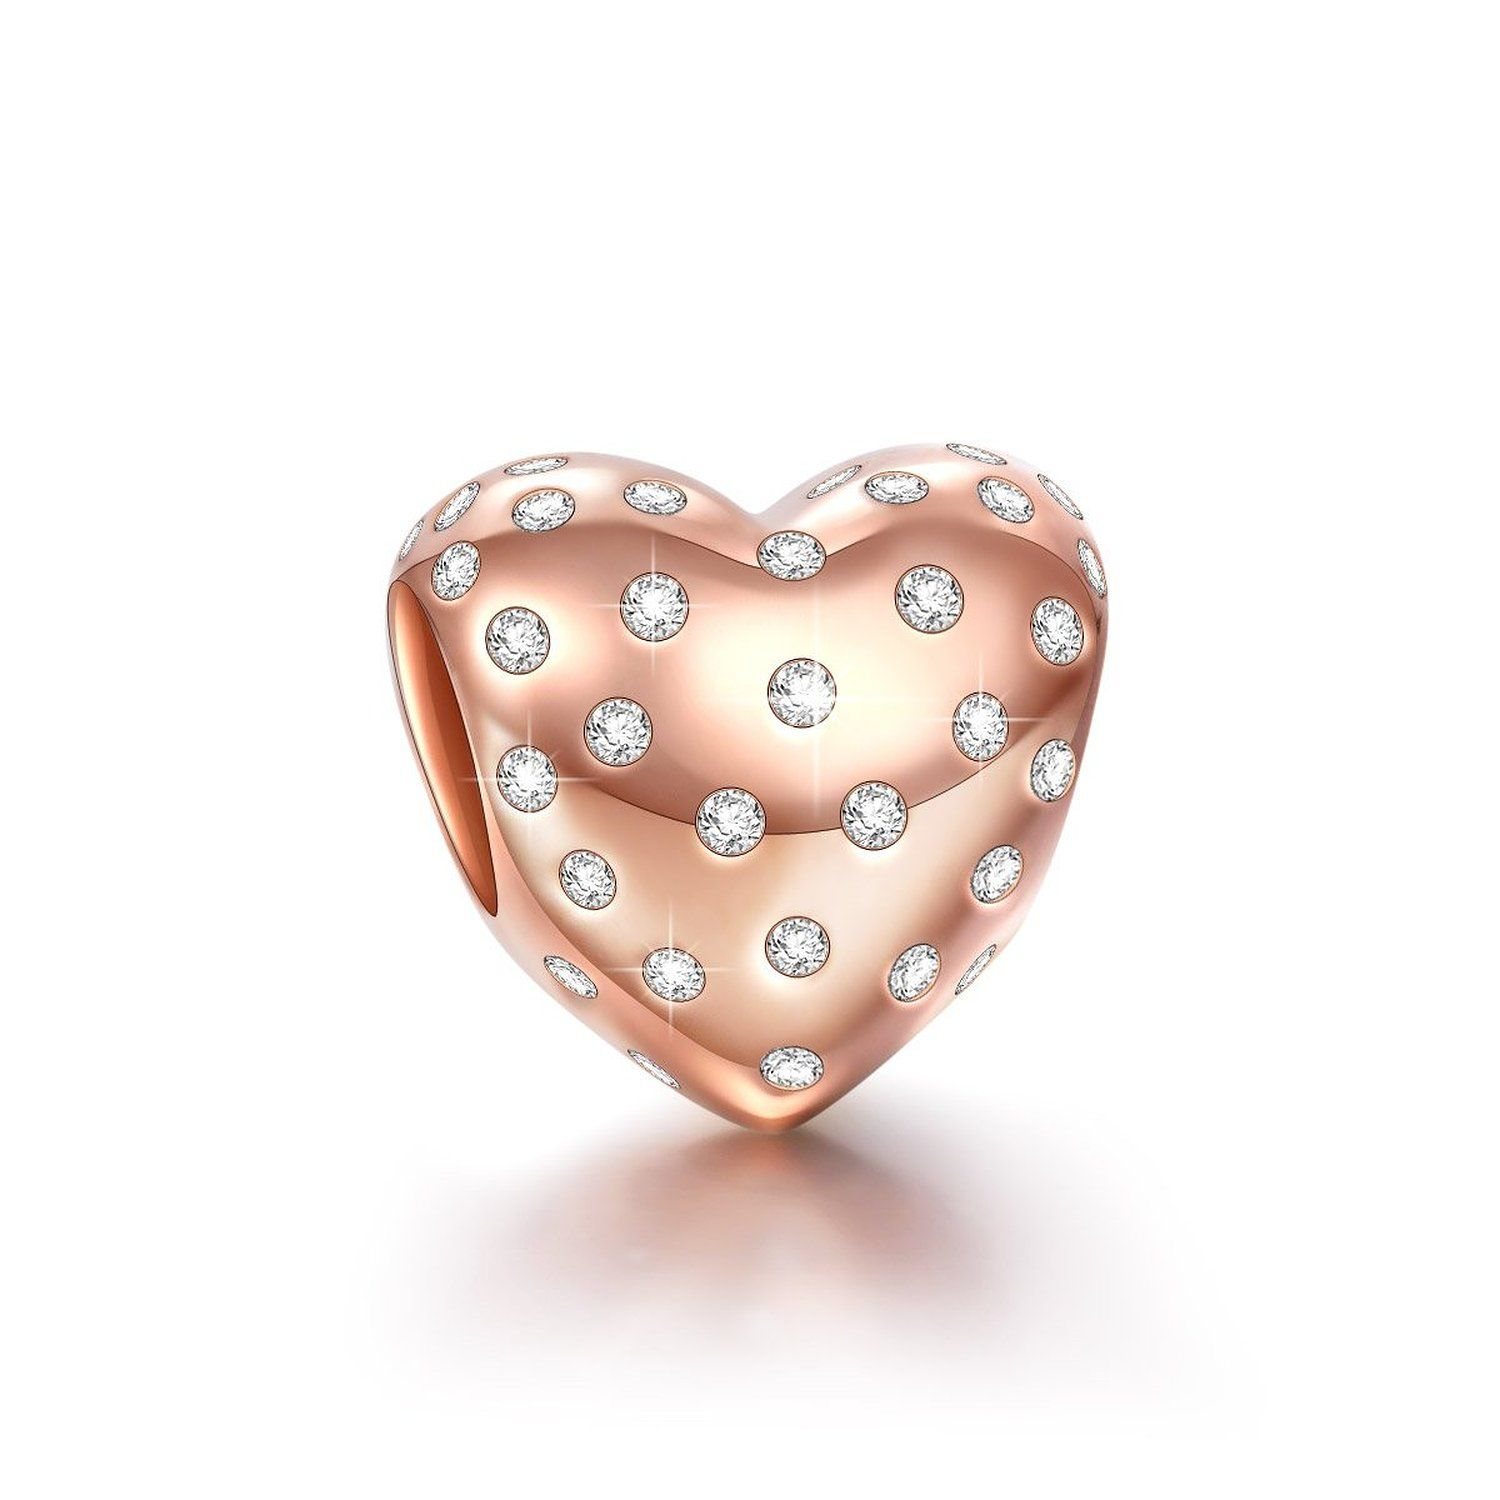 Ninaqueen sterling silver hope heart rose gold plated cubic